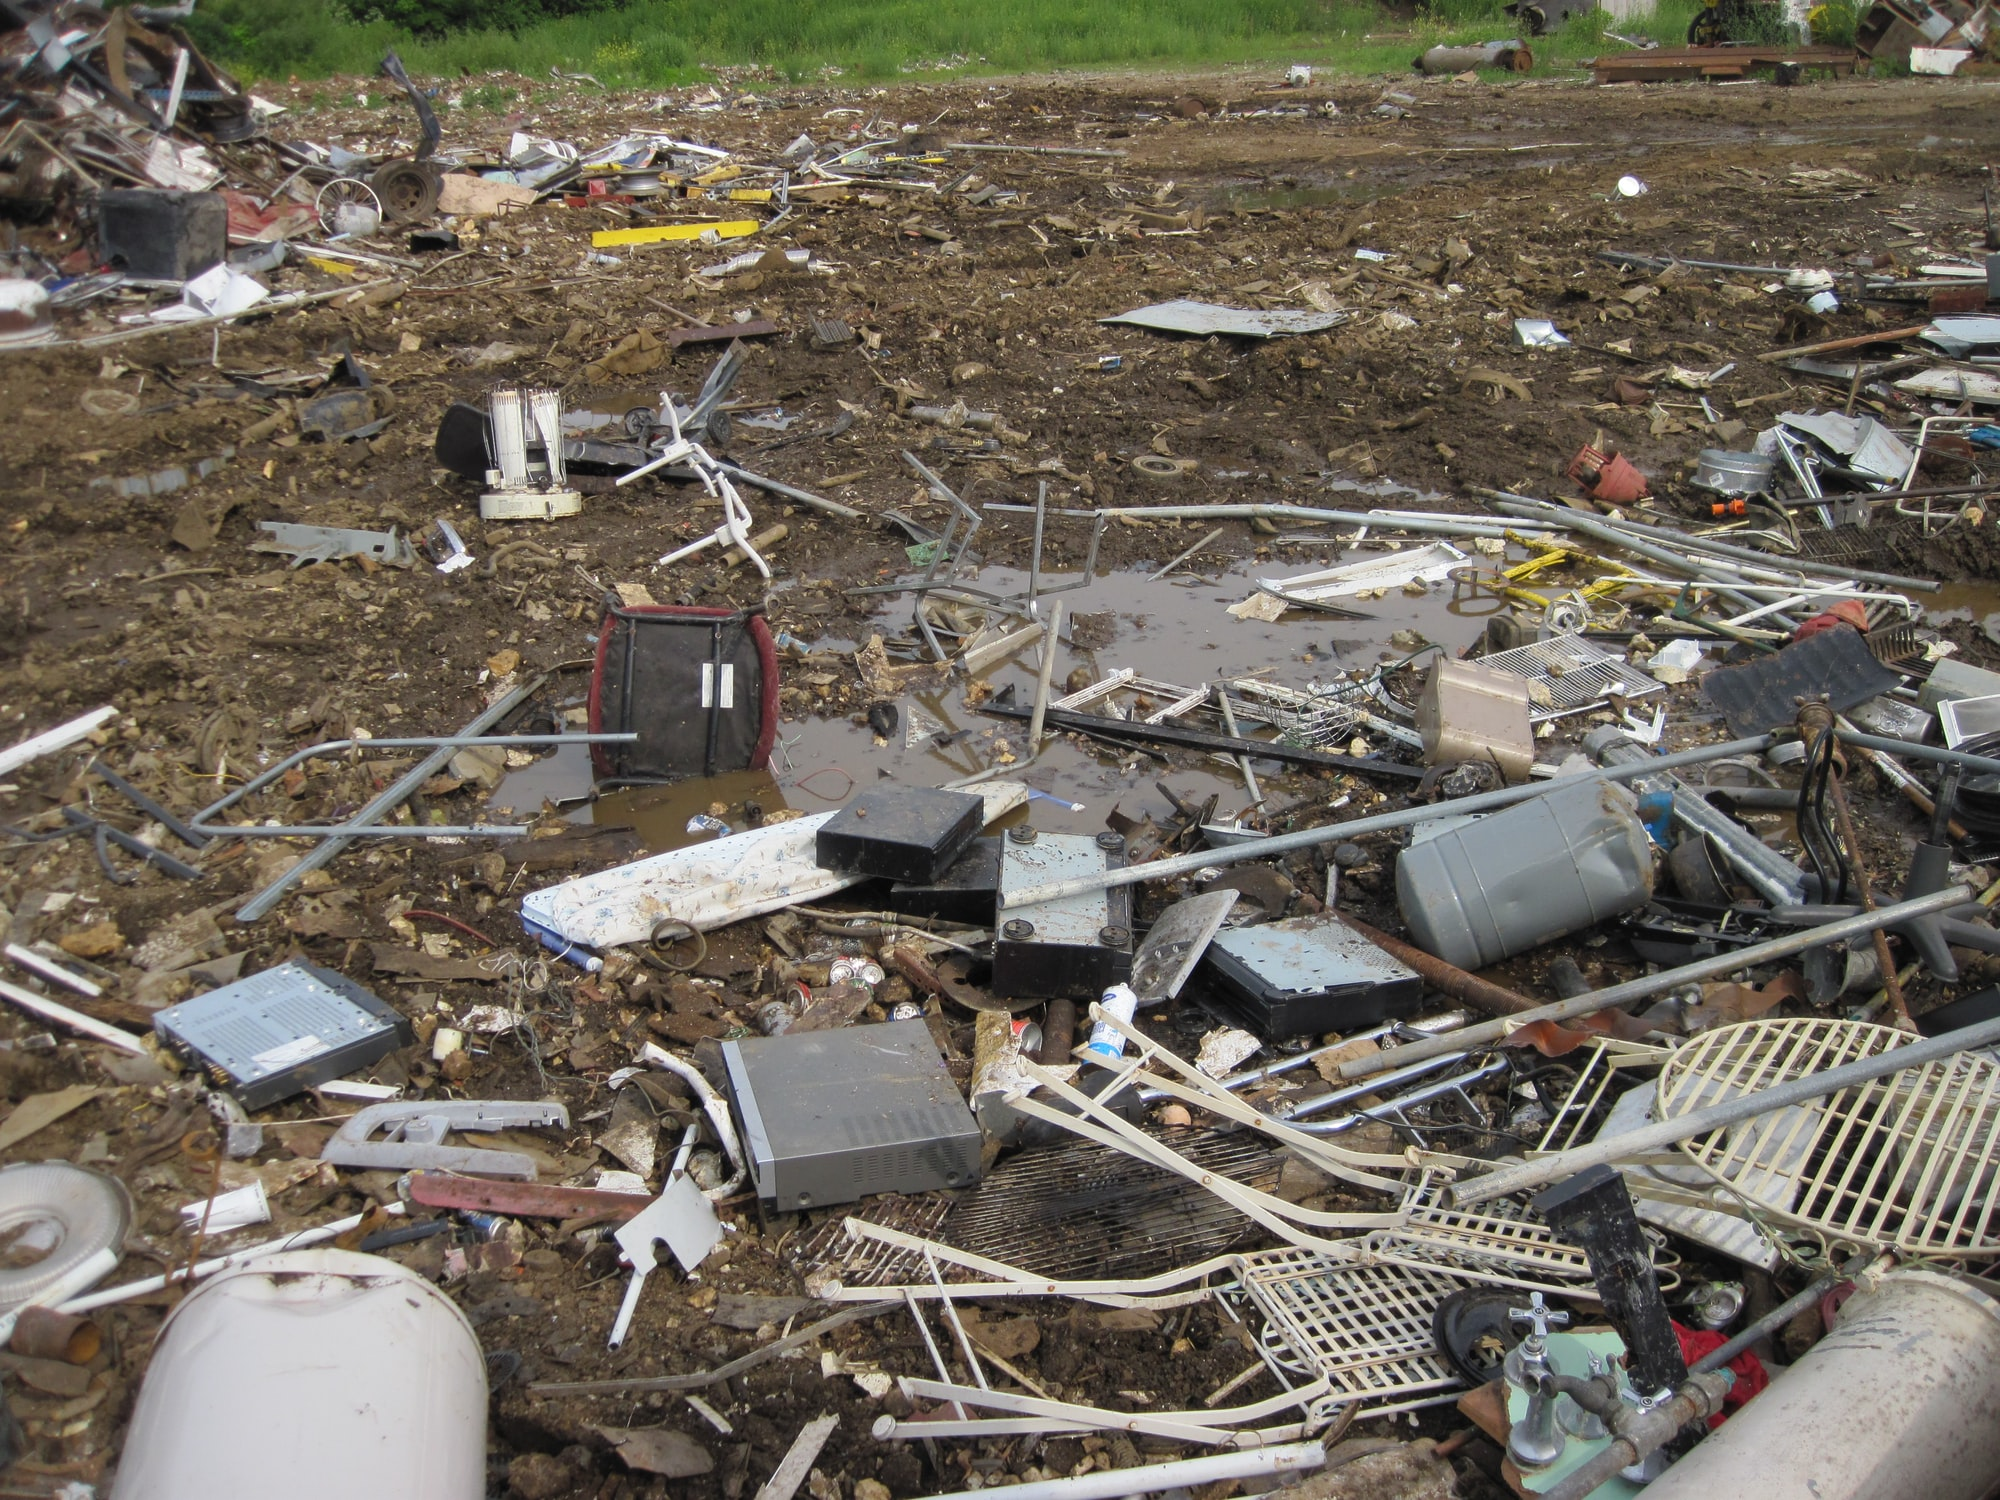 This is from a metal scrap yard in Richmond, Indiana.  There are clearly several VCRs or DVD players sitting in the mud in the foreground that should be handled as e-waste and not just scrap metal.   Electronics should be recycled through certificate e-waste processors, not metal scrap yards.